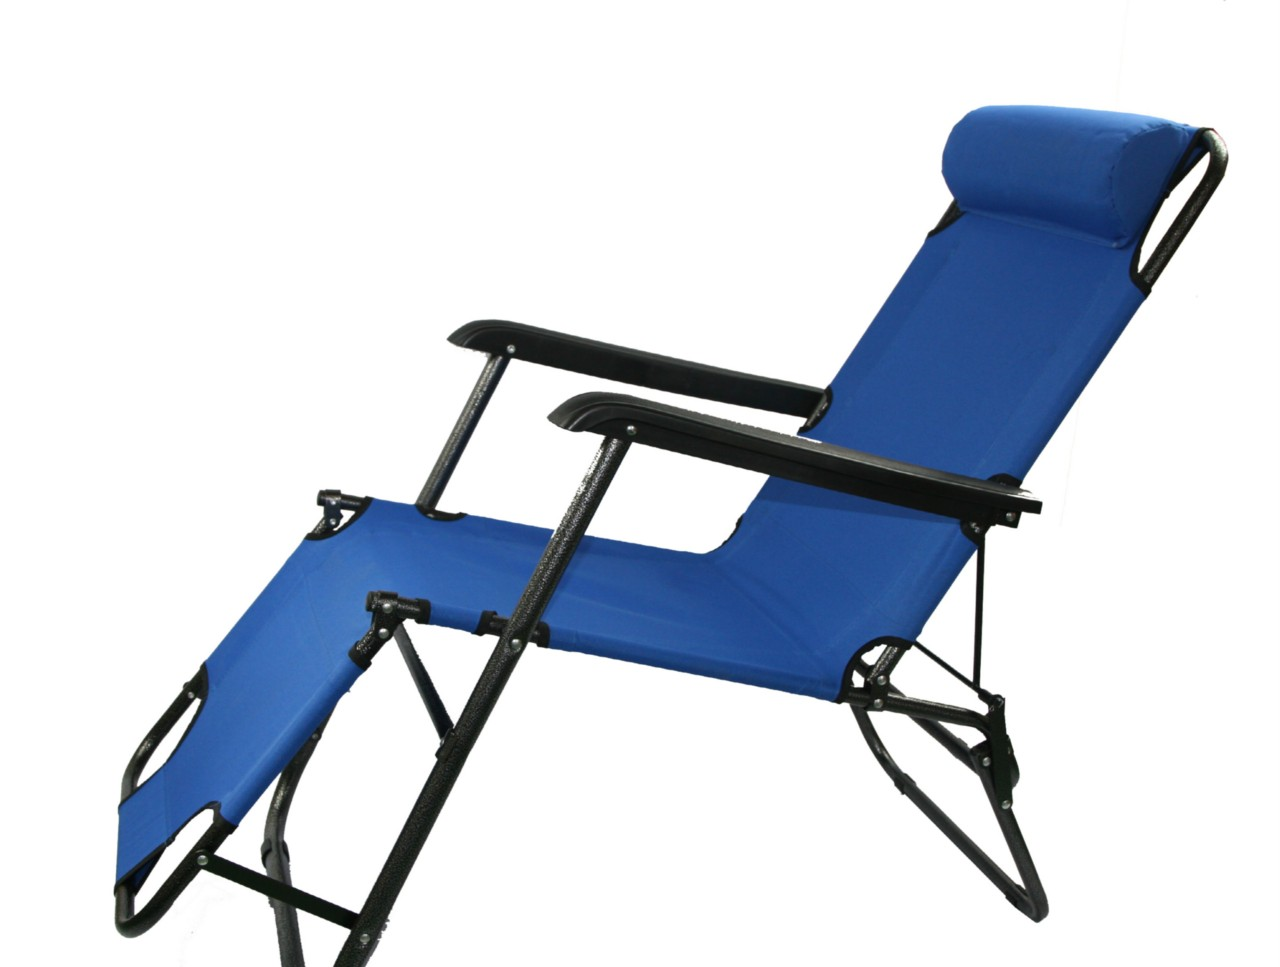 fold up chairs target flip zone chair new light portable folding recliner outdoor lounge